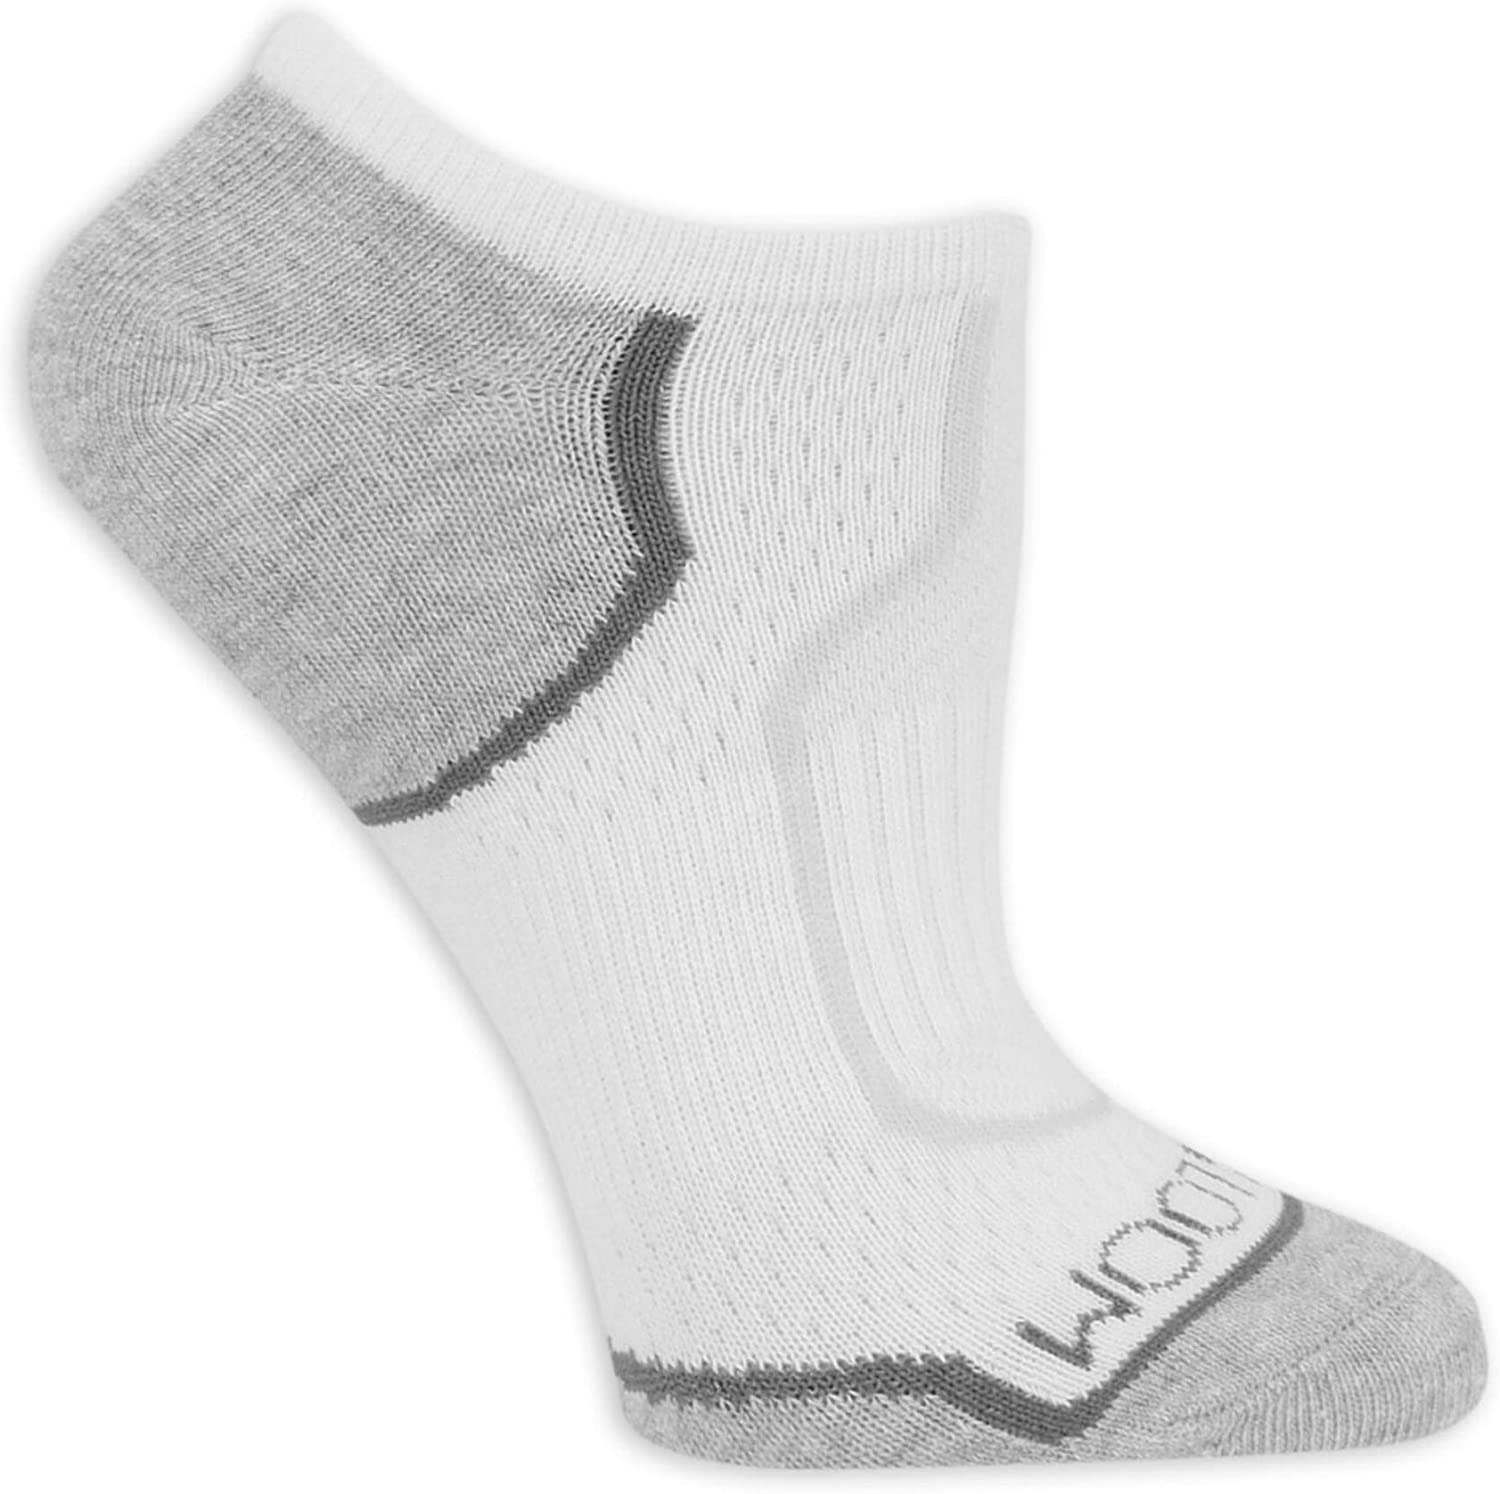 Fruit Of The Loom Womens 3 Pack On Her Feet No Show Socks